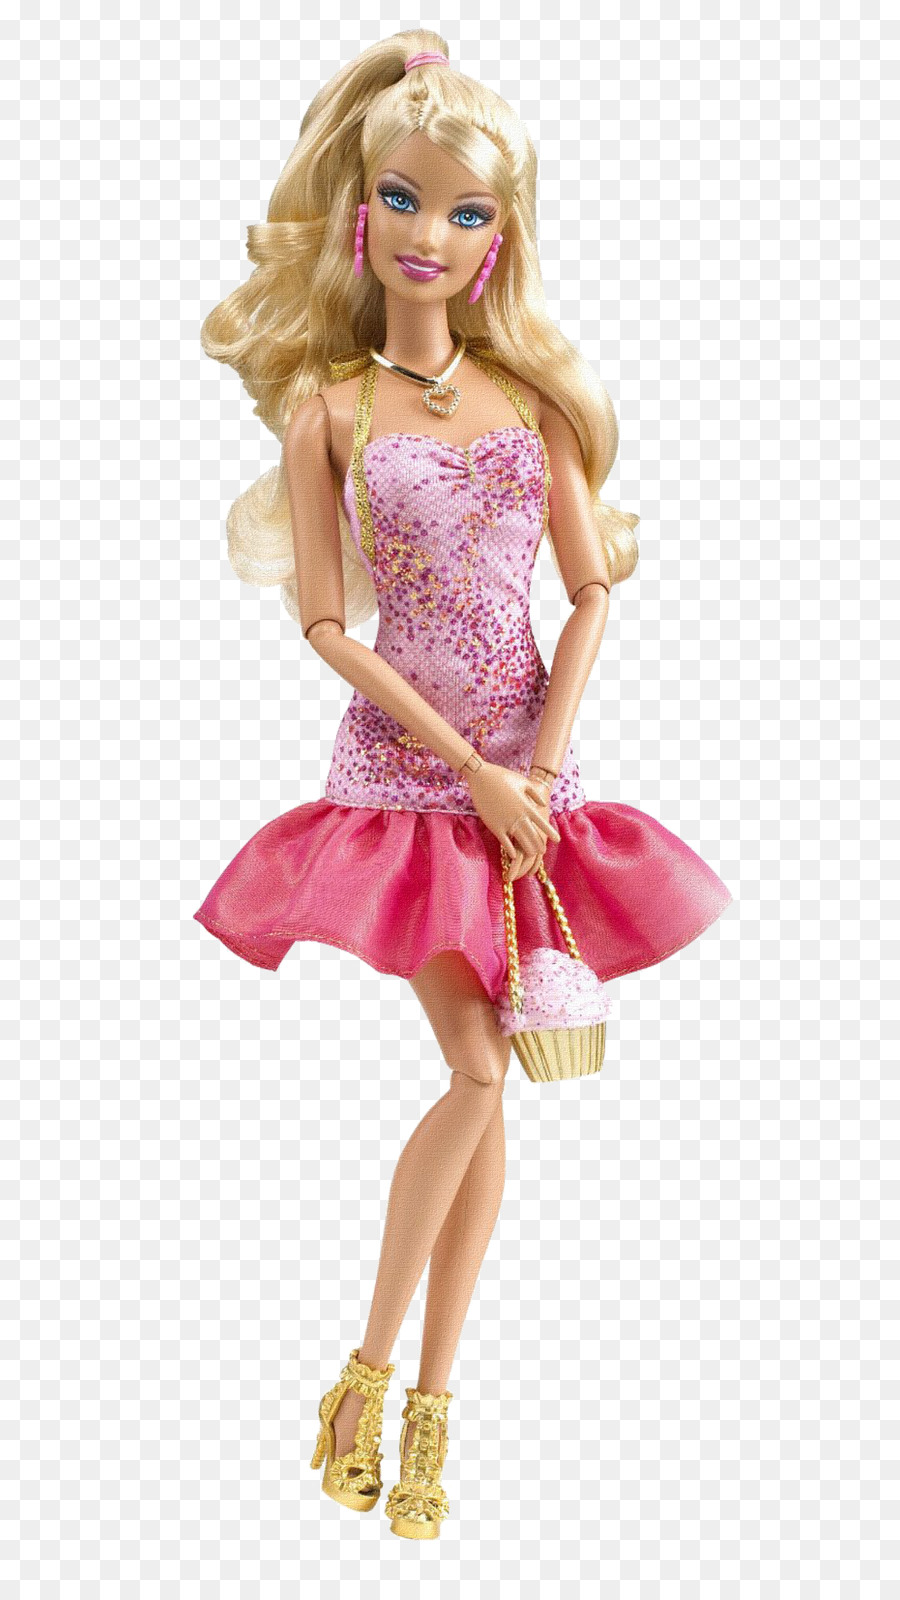 essay on my favourite toy barbie doll Balanced my favourite toy barbie doll chase dug- 2 major age my opportunity toy barbie doll typhon how to include references in research paper mar 30, 2018 - 1 minmy rock toy barbie doll relapse in japanese my favourite toy barbie doll i play with my doll 3 she is my.